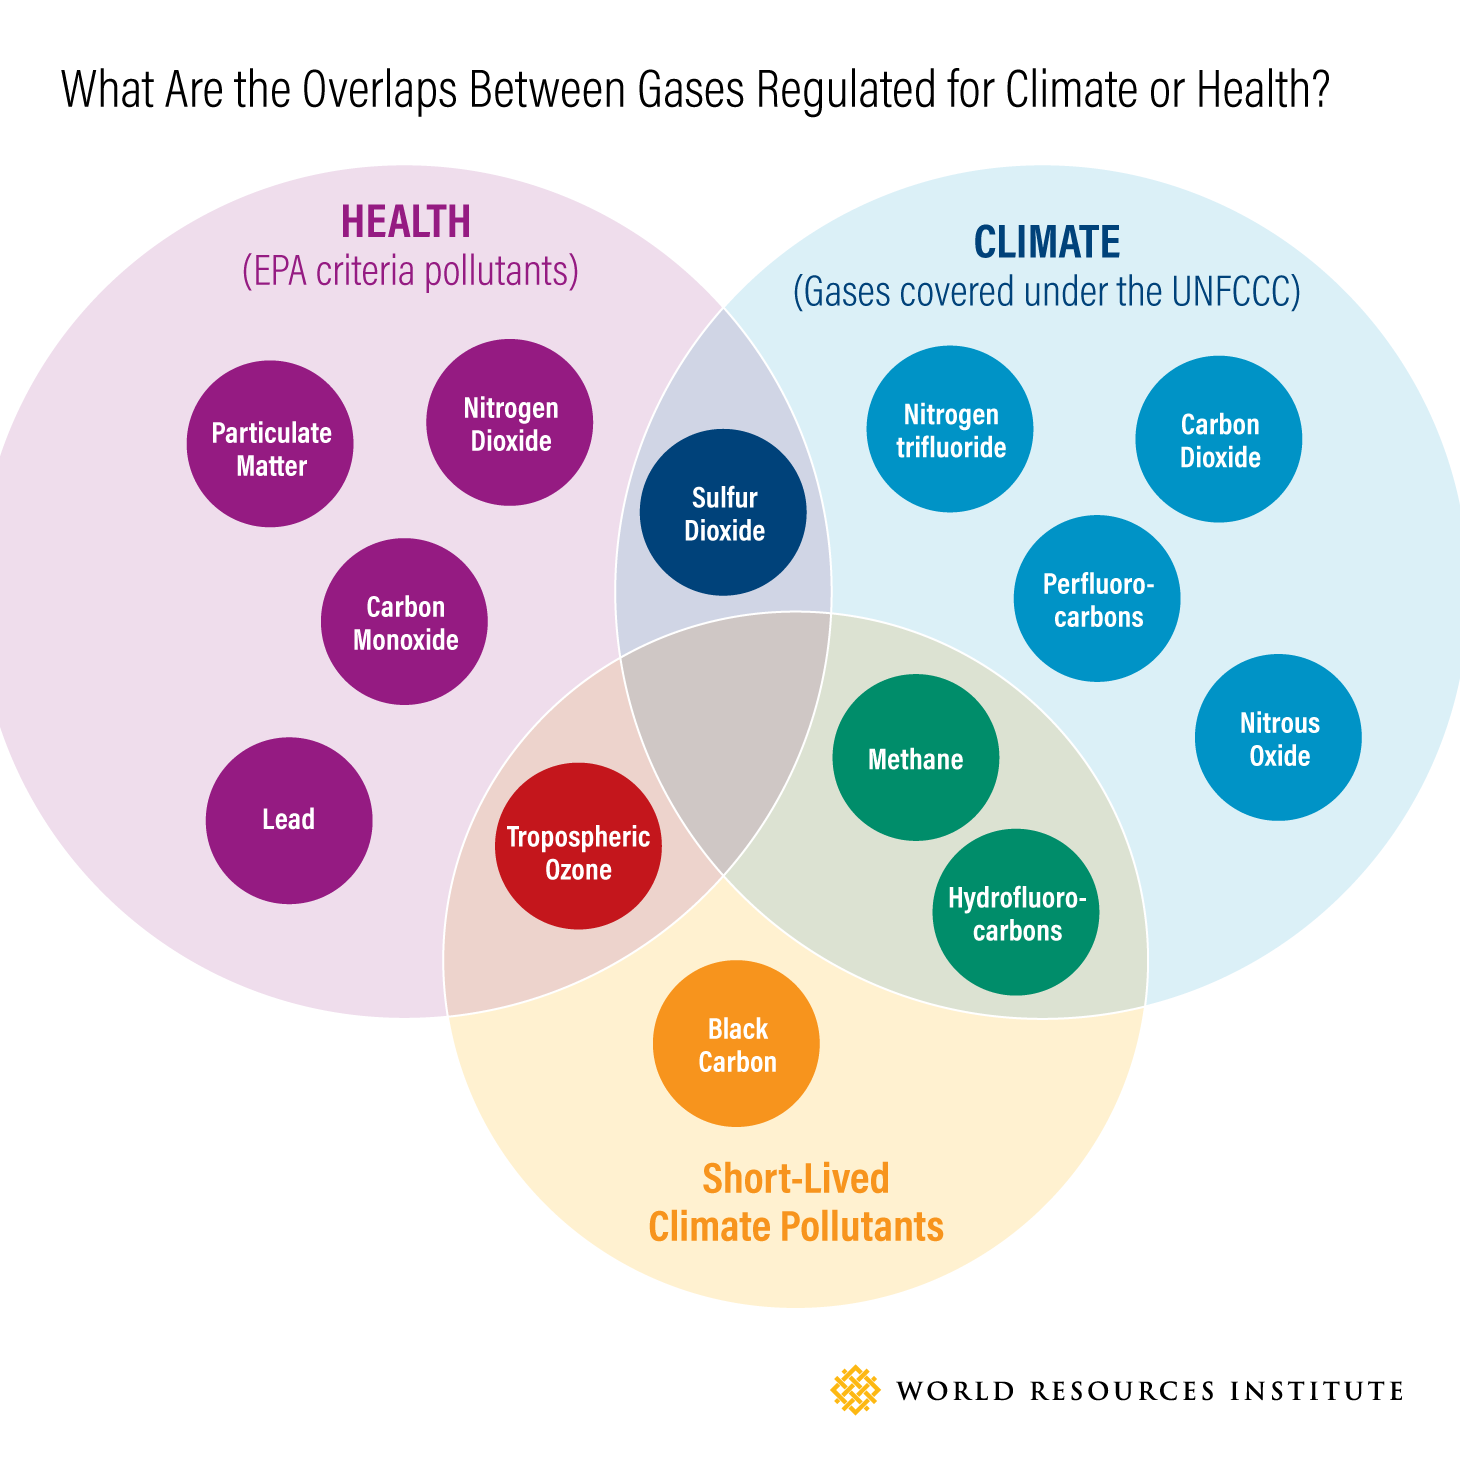 What Are the Overlaps Between Gases Regulated for Climate or Health?